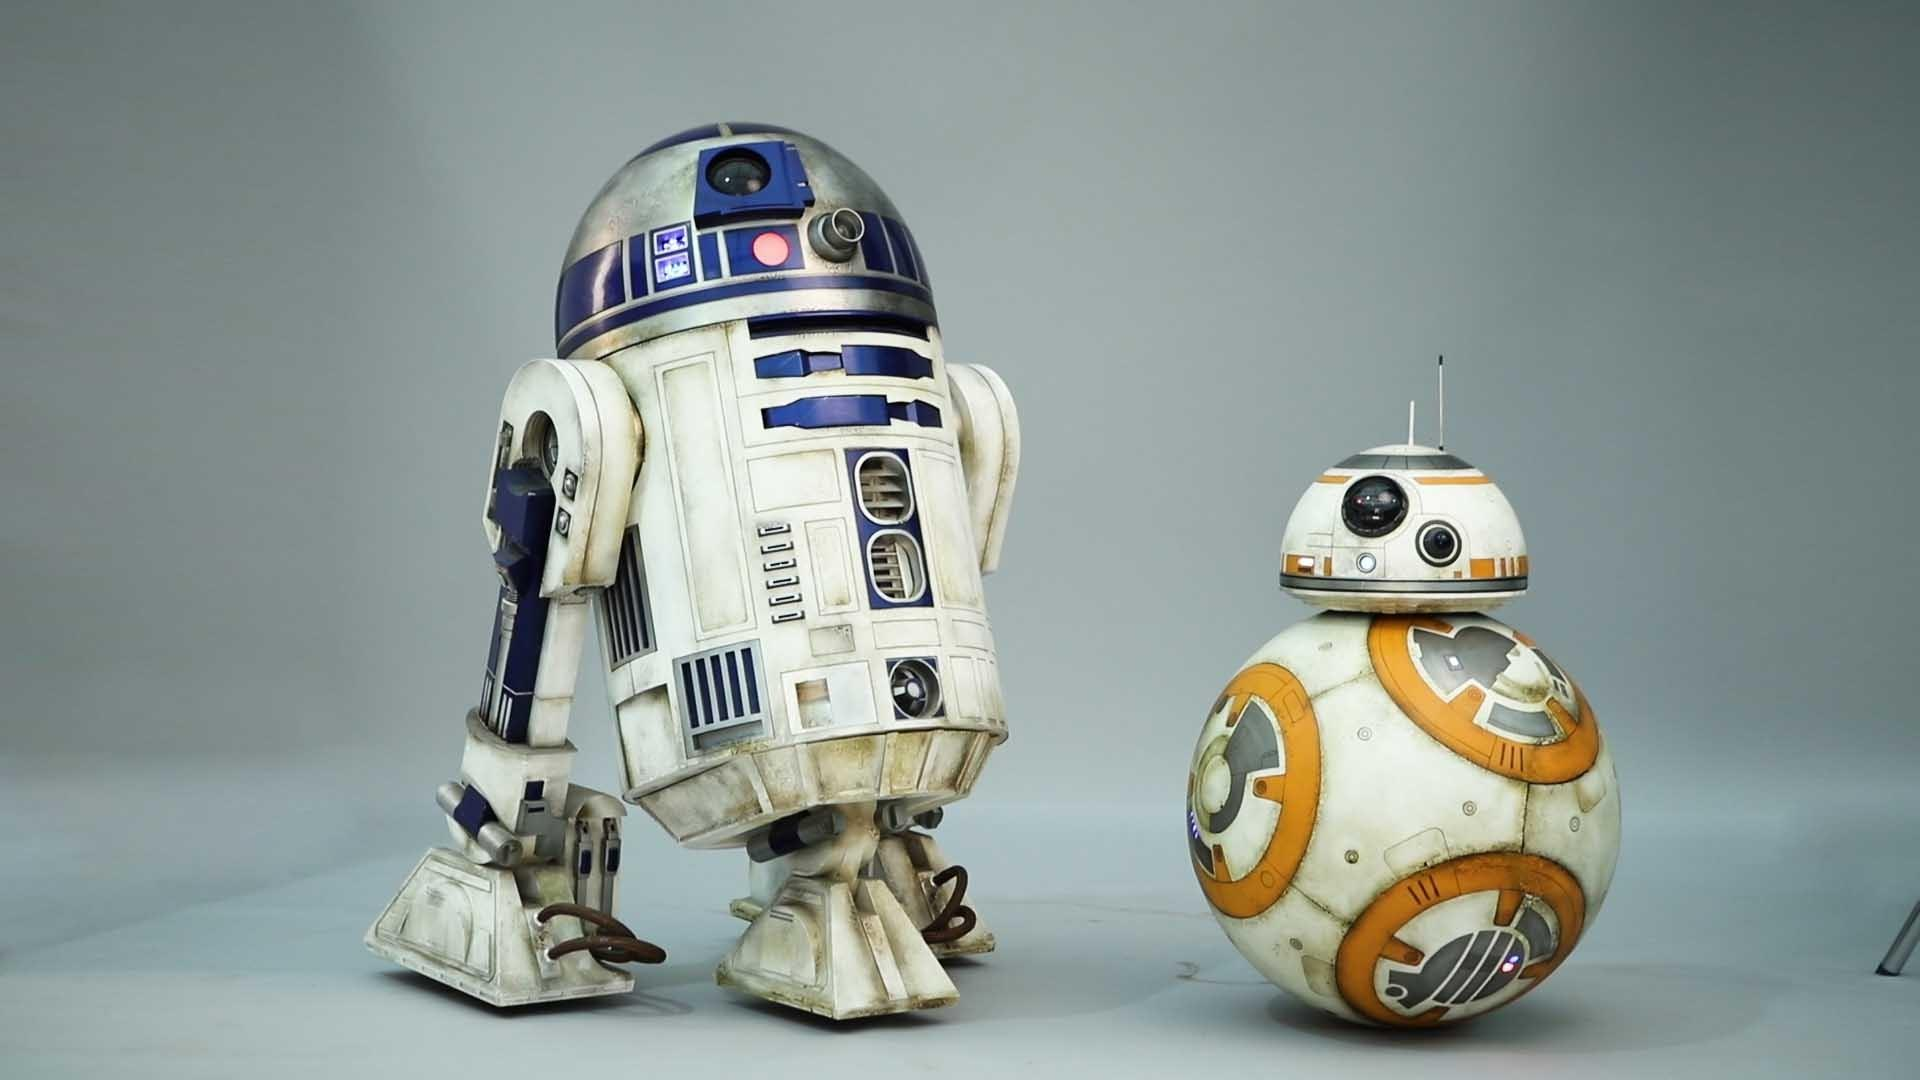 Droid Star Wars Wallpapers Wallpaper Cave